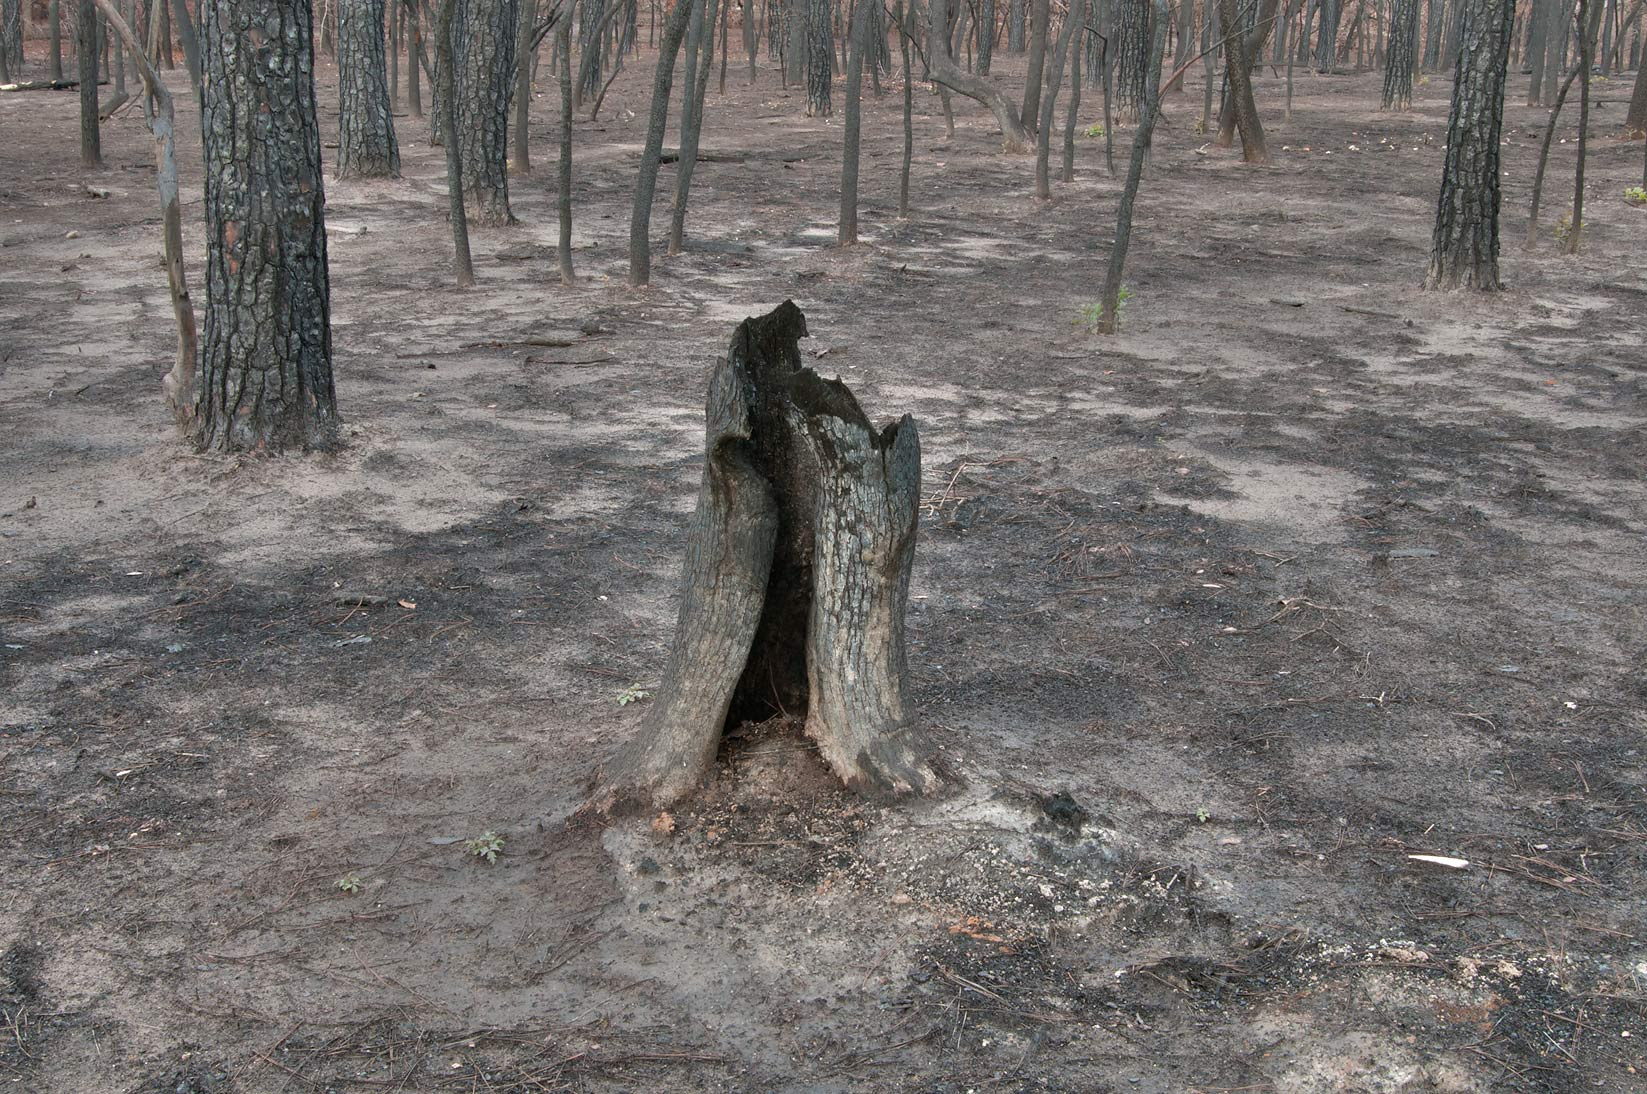 Burned tree stump in Bastrop State Park. Bastrop, Texas